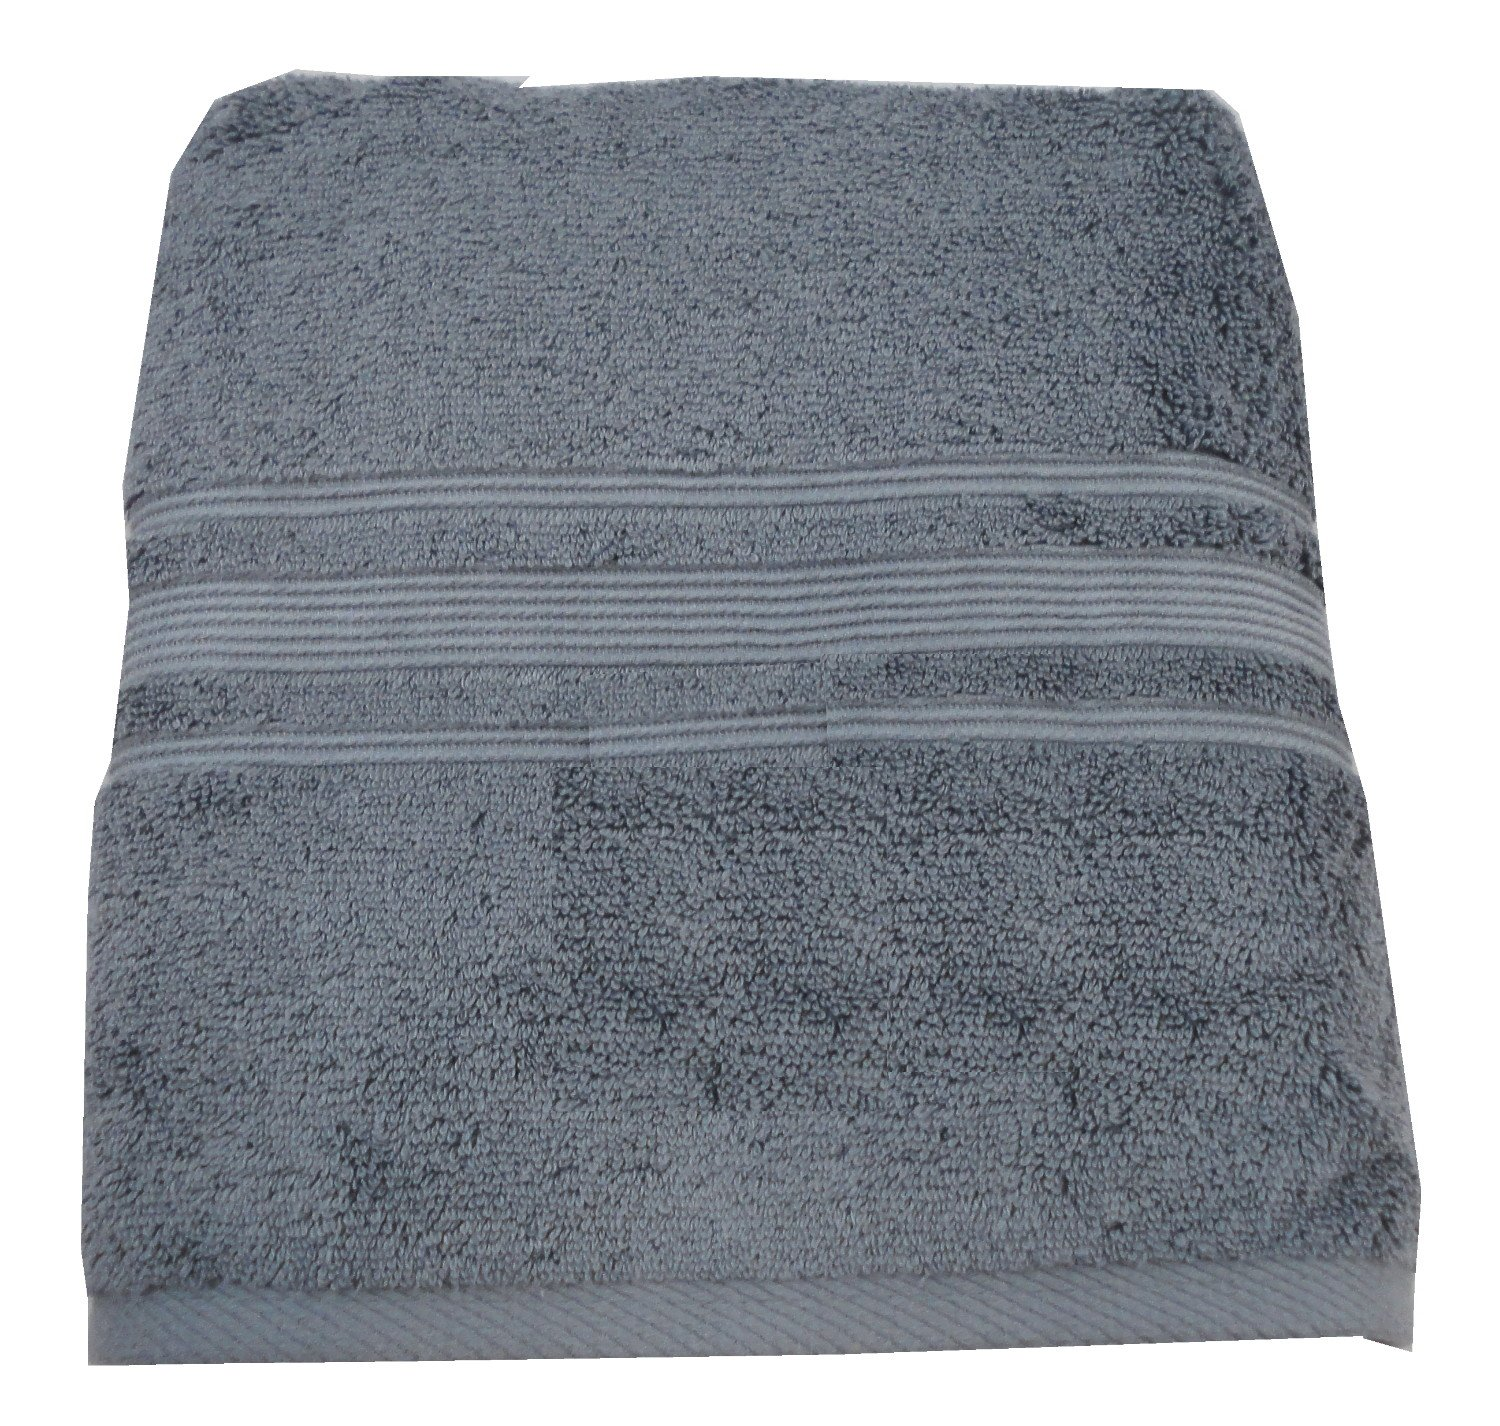 Excellent Amazon.com: Charisma Bath Towel - 100% Hygro Cotton, Grey: Home  KO59